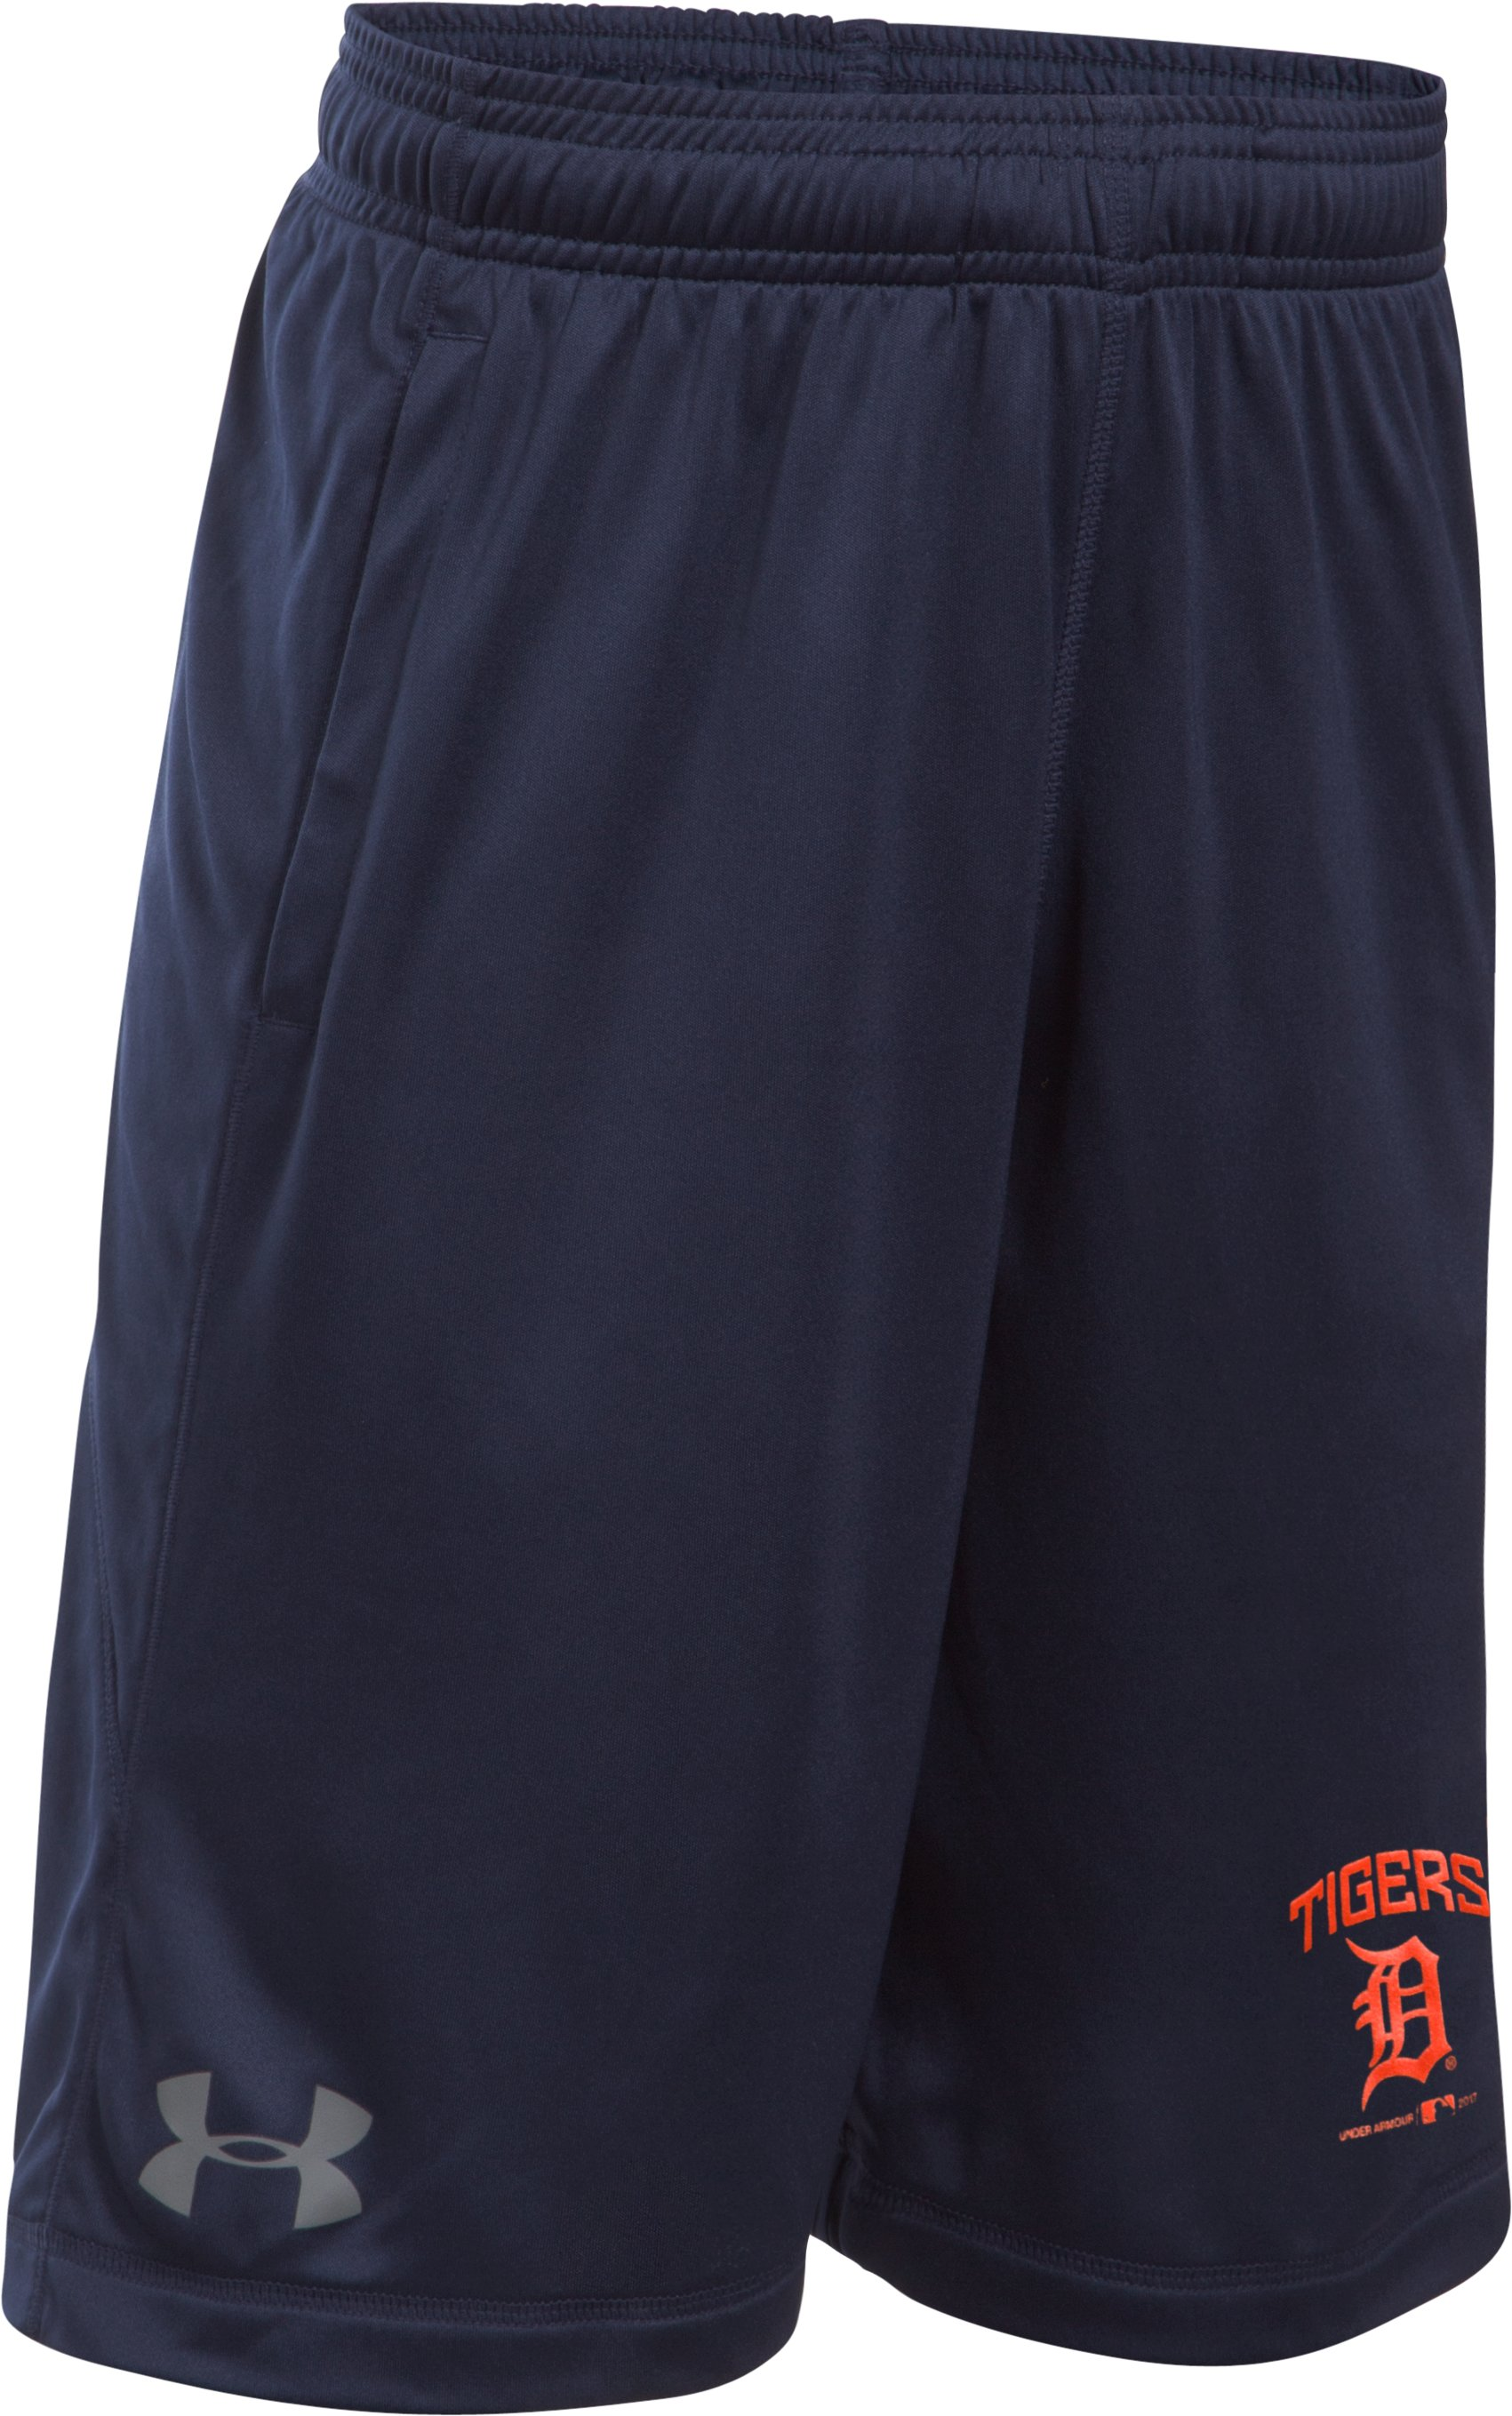 Boys' Detroit Tigers Training Shorts, Midnight Navy